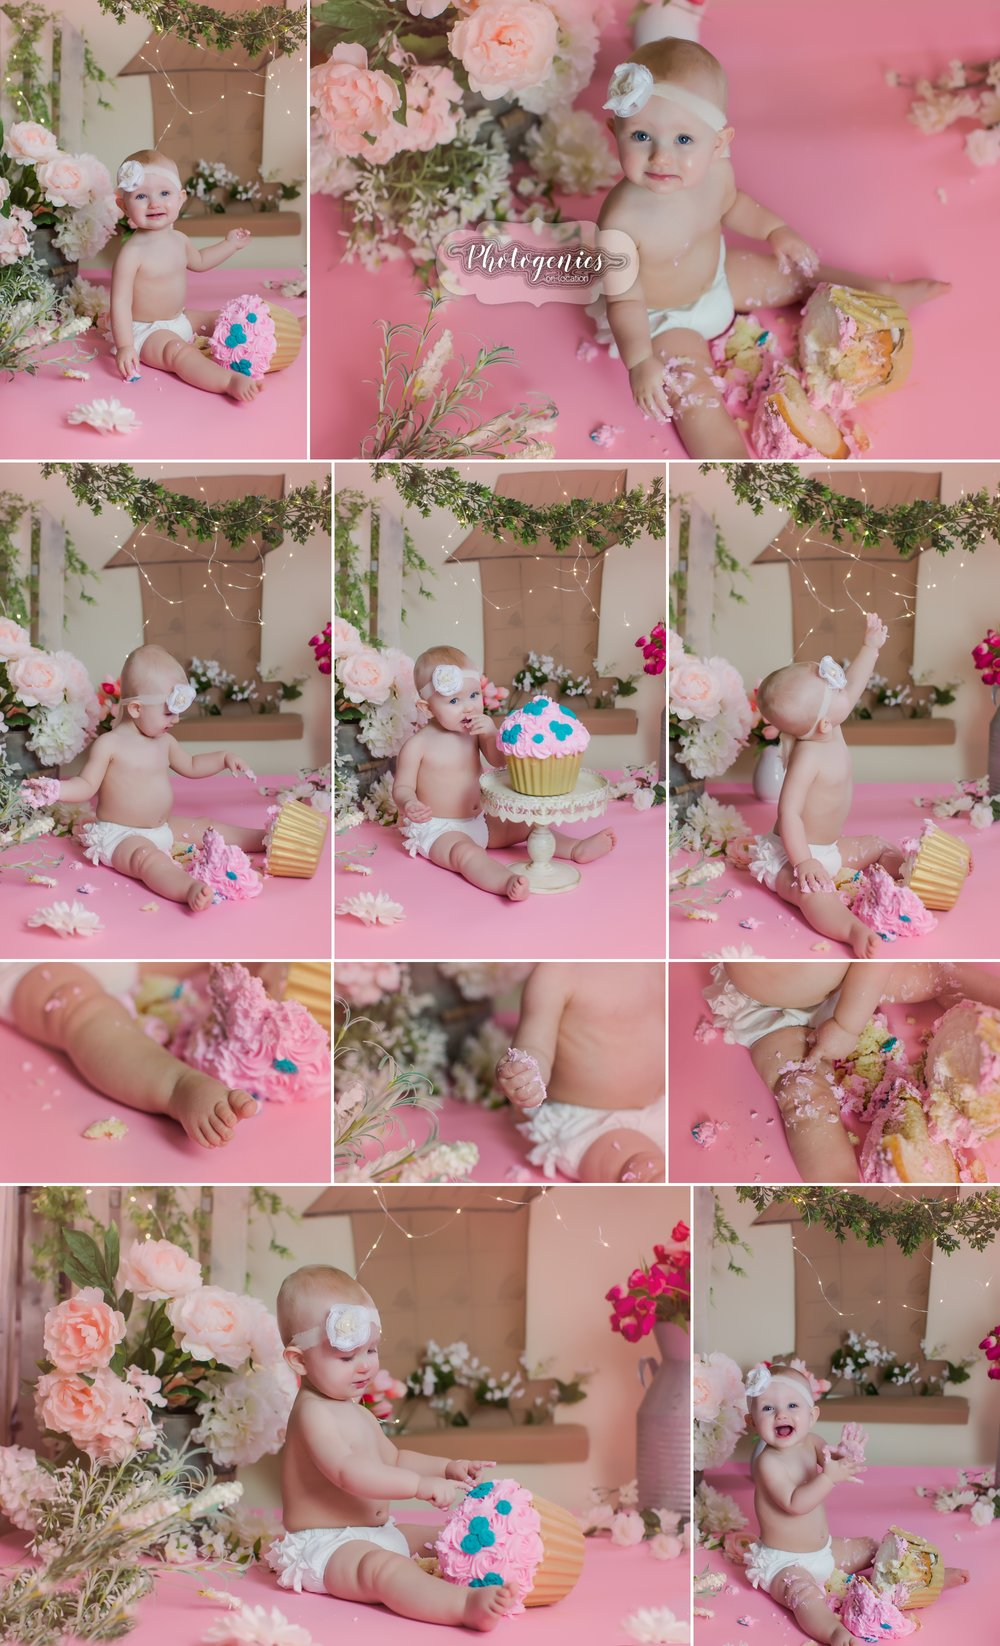 birthday_photography_girl_cake_smash_vintage_flowers_unique_ideas_indoor_family_12_months_mos_poses_photo_props_outfits_what_to_wear 7